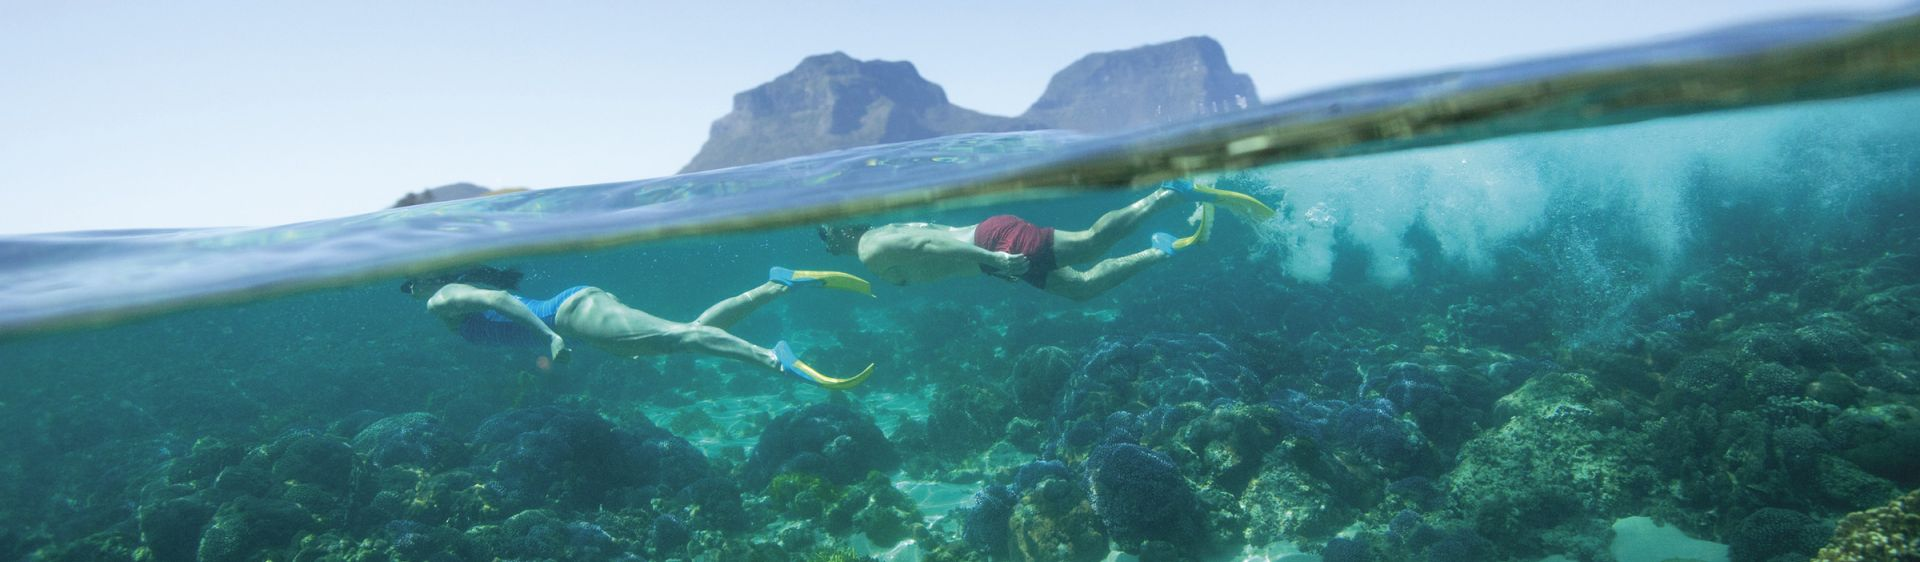 Snorkelling at Lord Howe Island